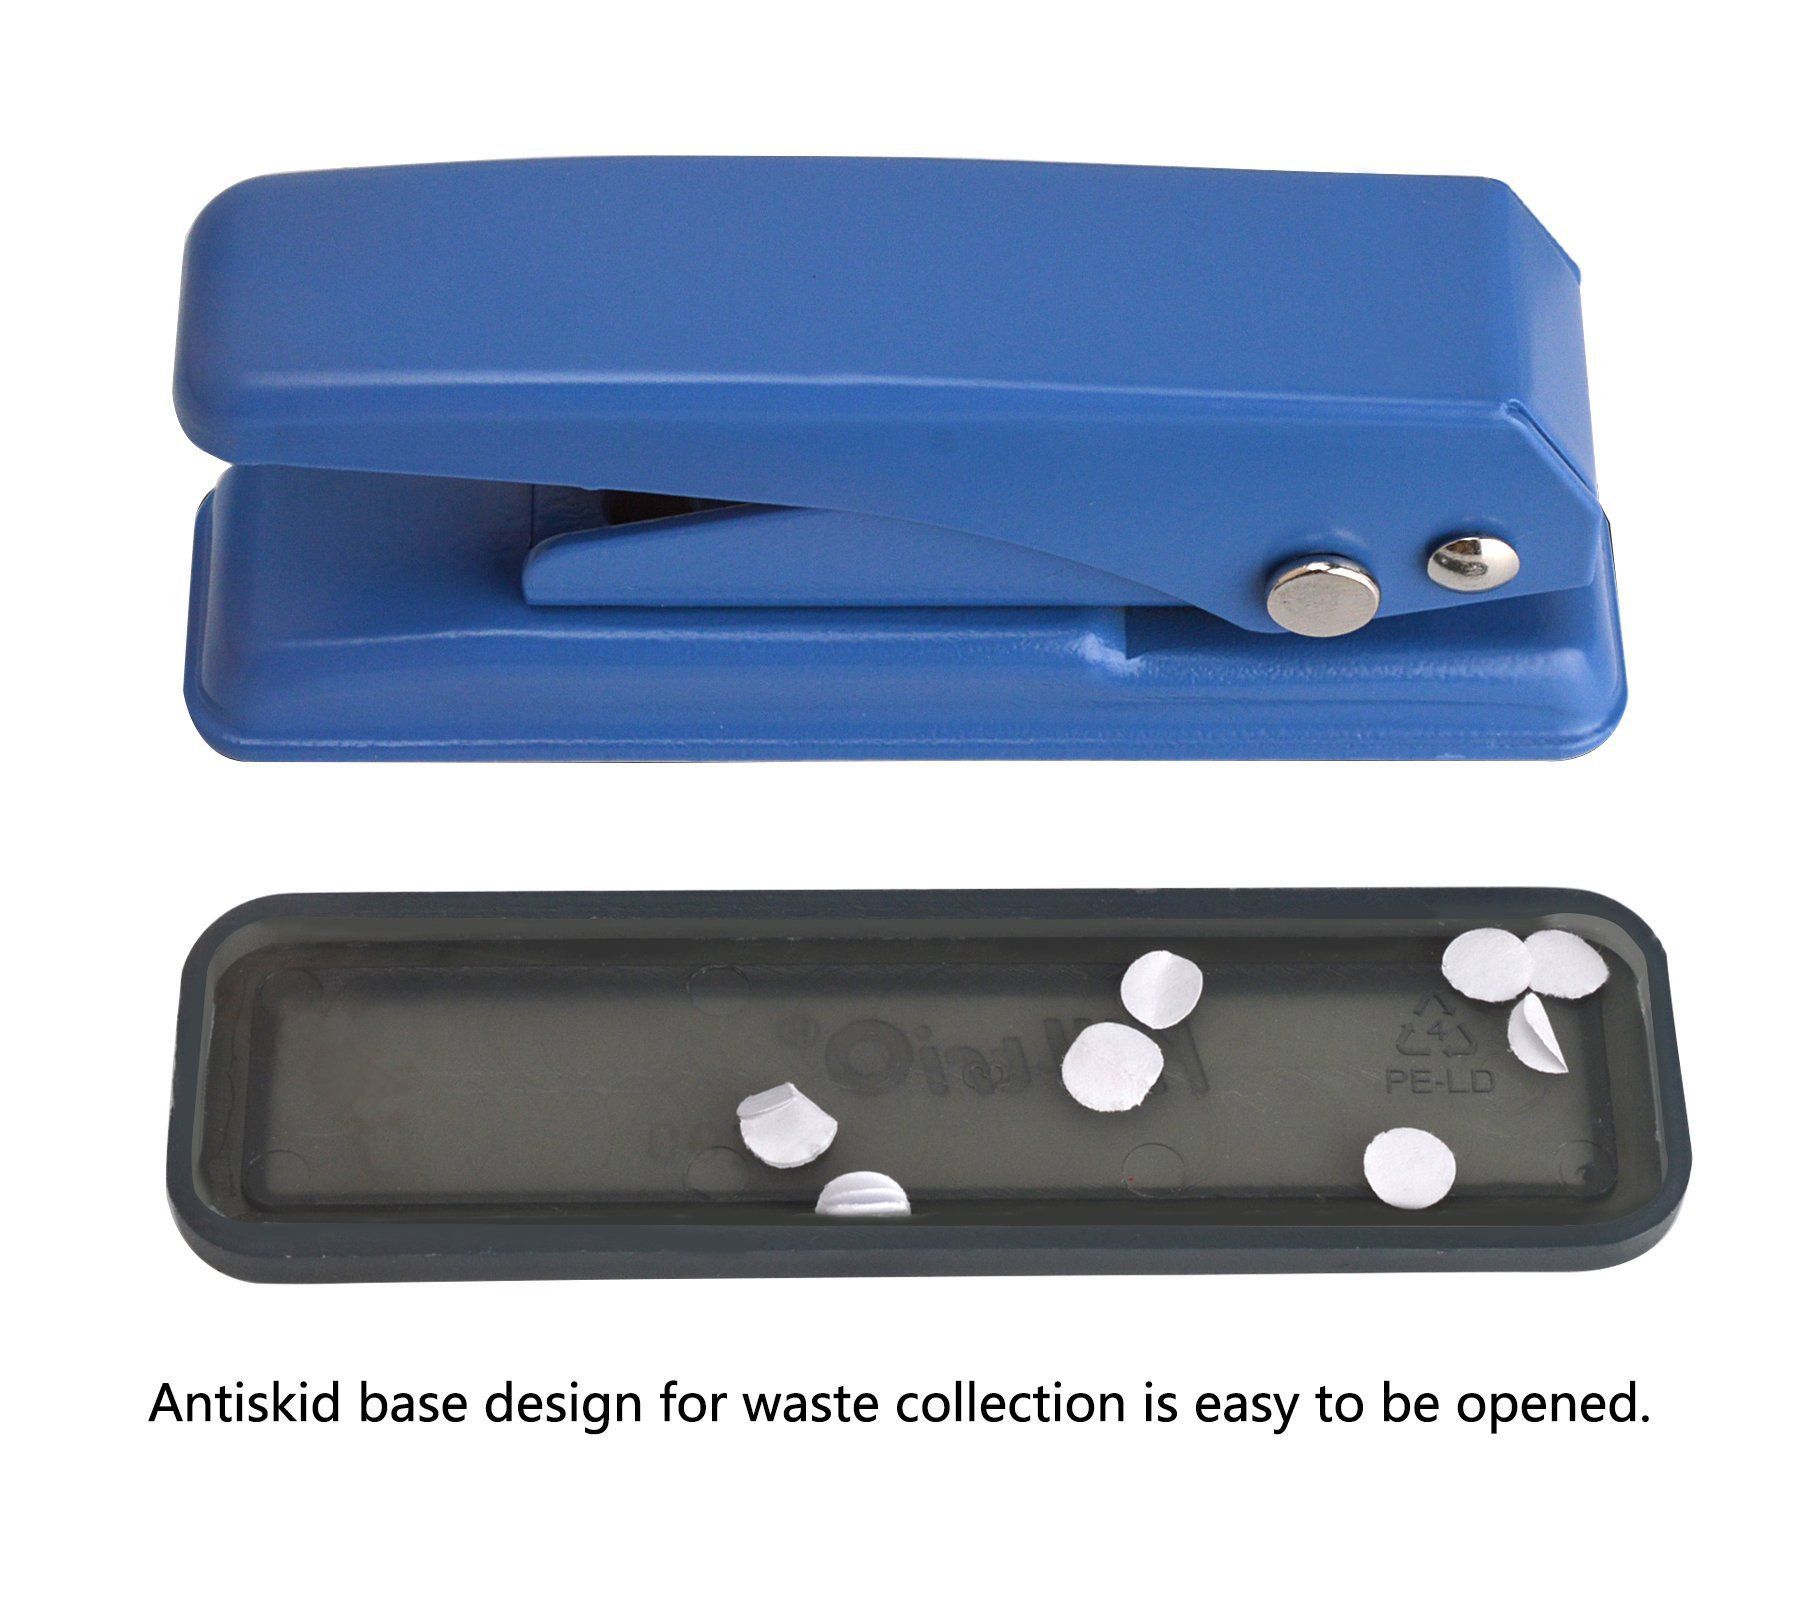 Mroco Low Force 1 Hole Punch 20 Sheets Punch Capacity 1 4 Holes Hole Puncher Paper Punch Hand Punch With Sk Paper Punch Business Icons Design Hole Puncher